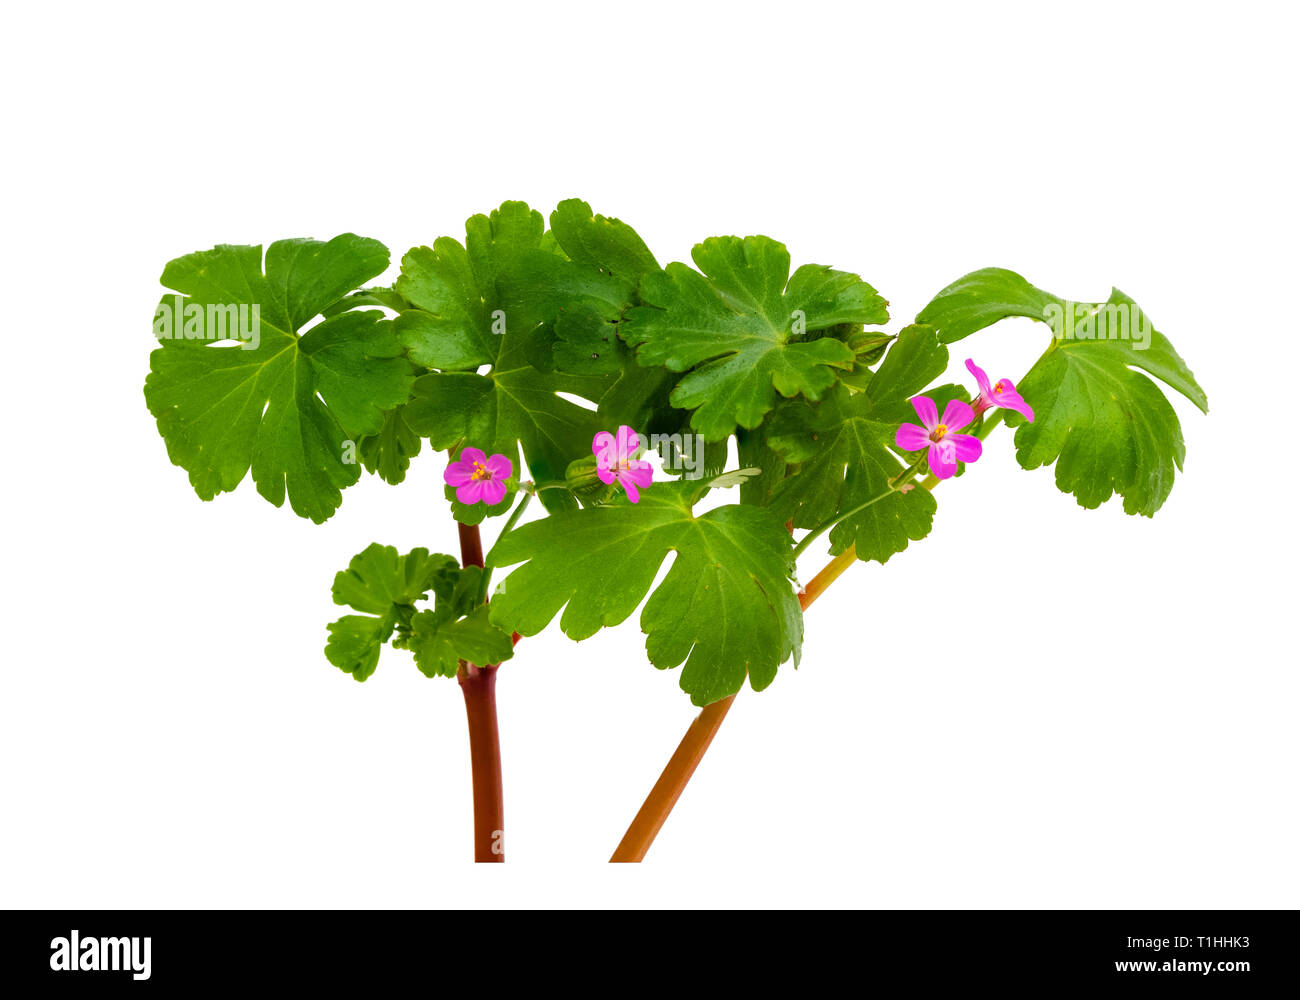 Small pink flowers and glossy foliage of the UK wildflower and annual garden weed, Geranium lucidum, shiny cranesbill - Stock Image